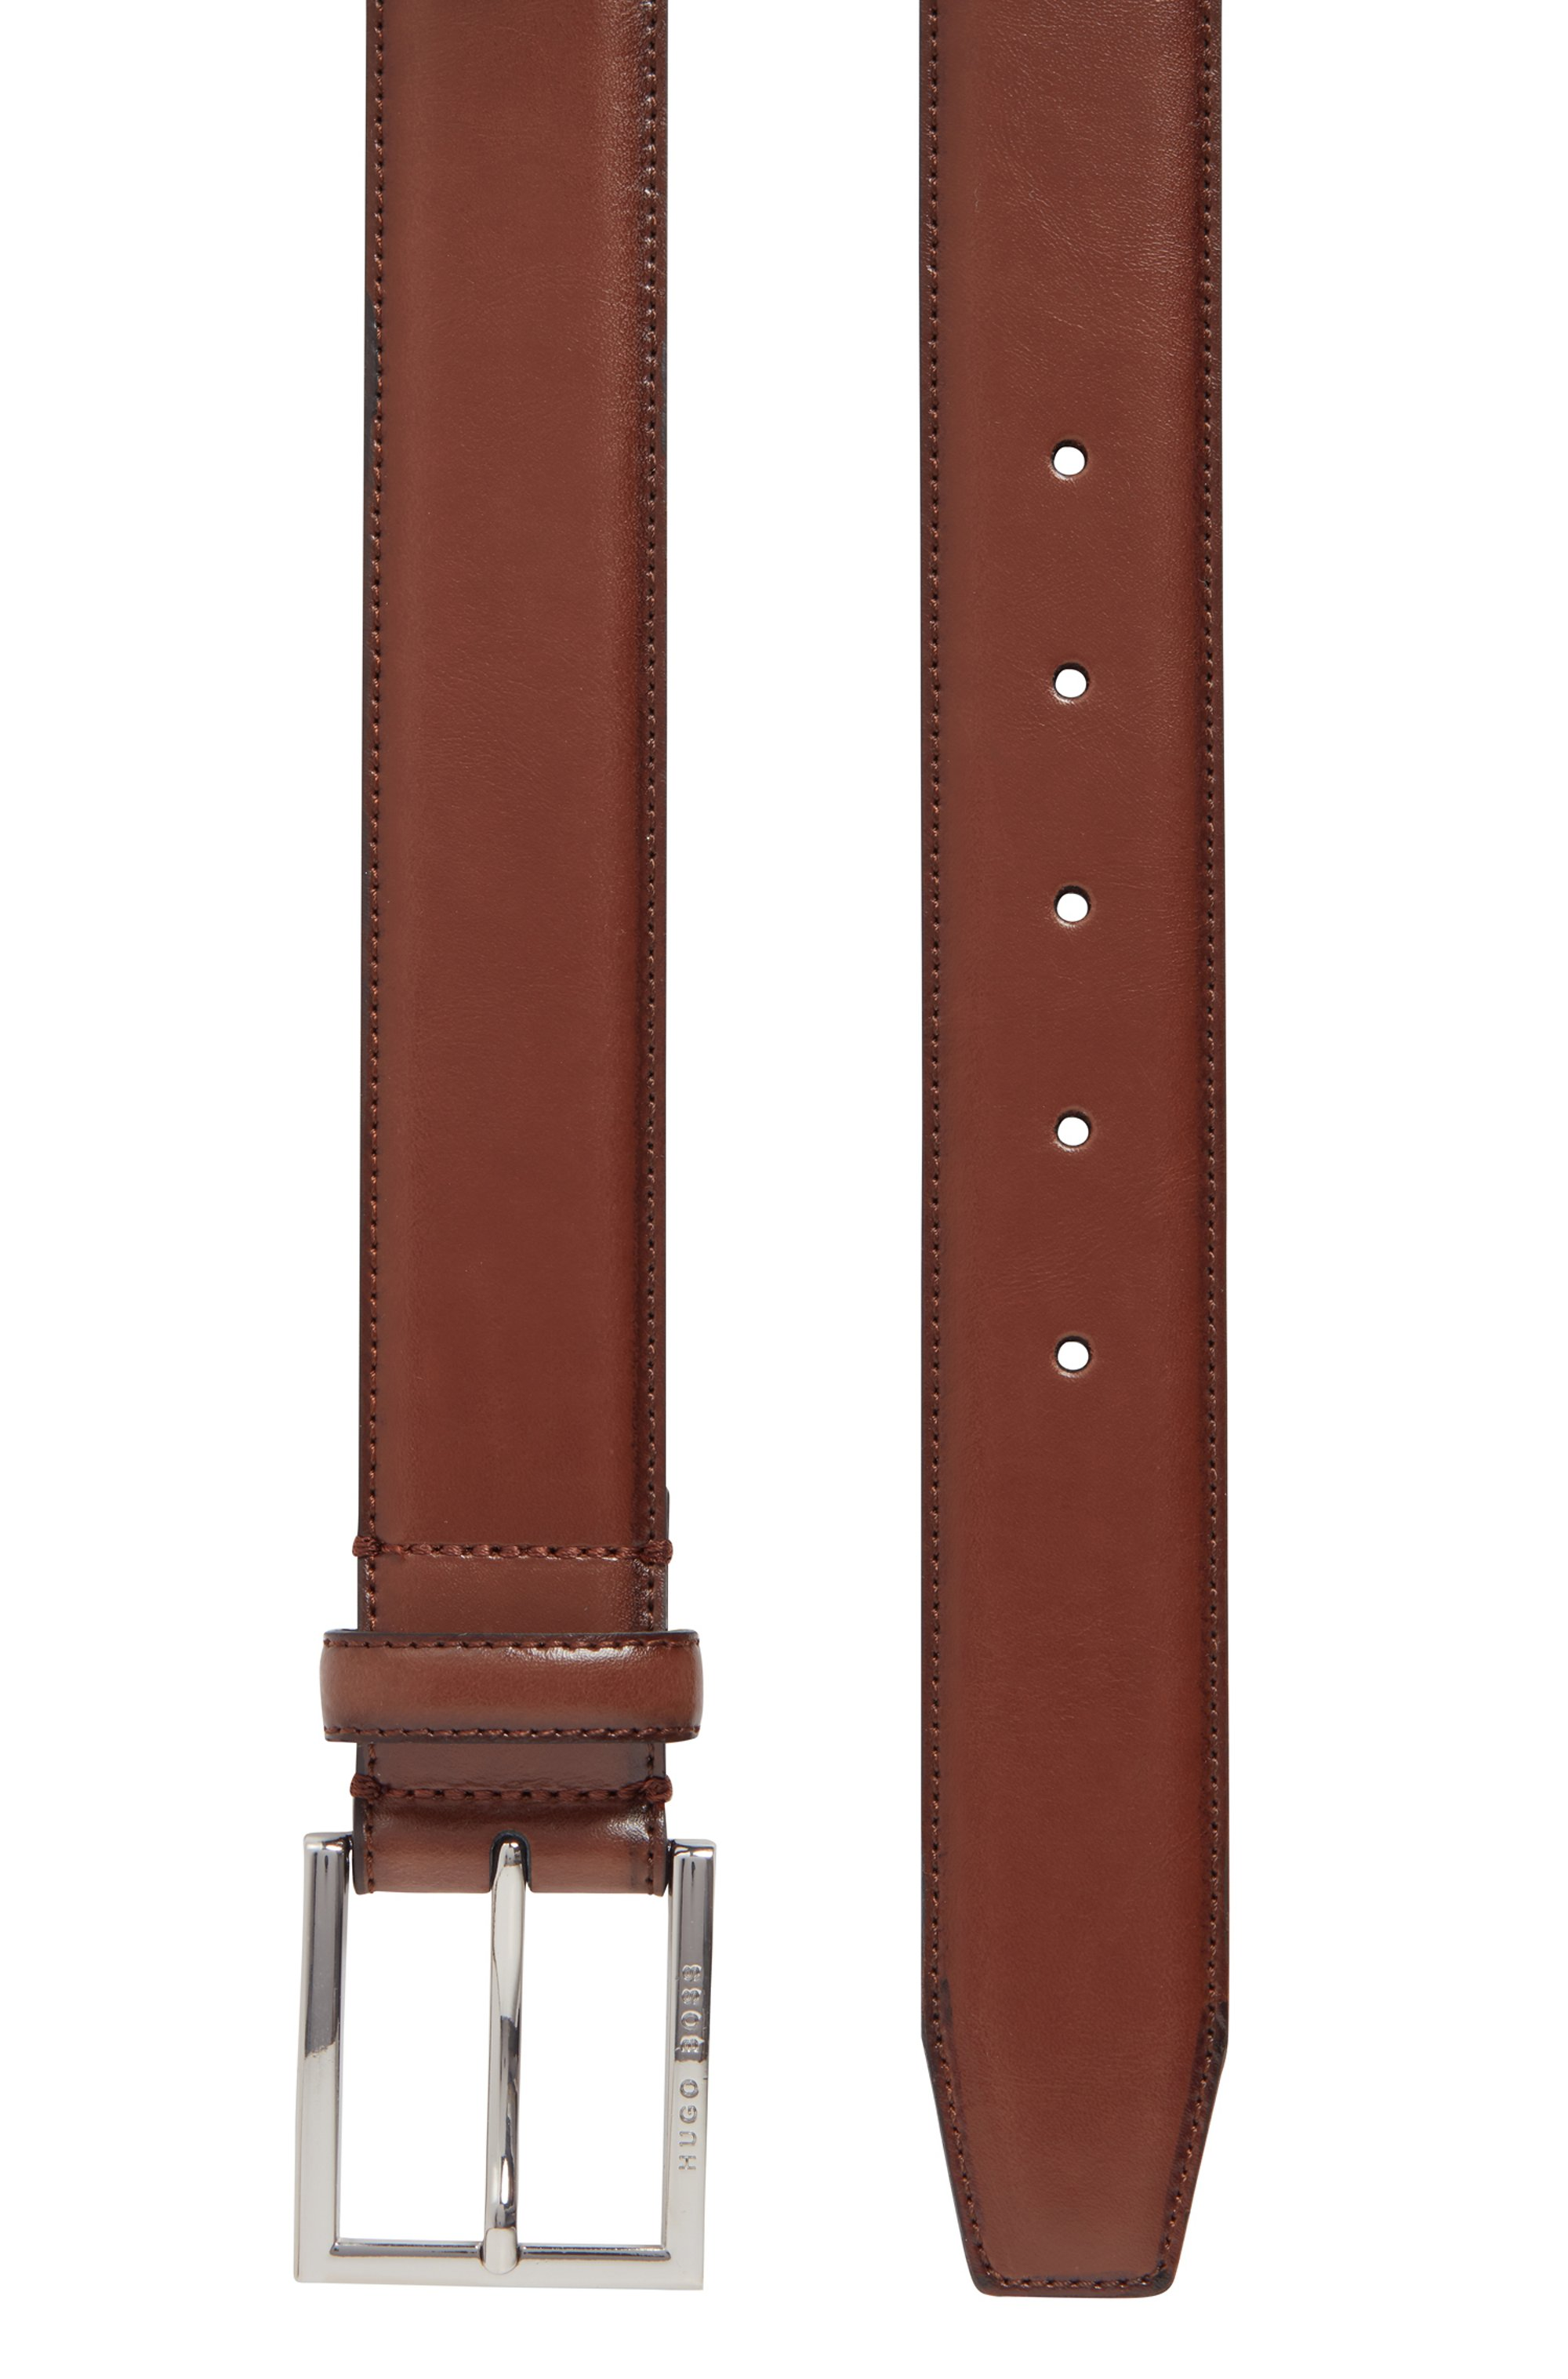 Burnished-leather belt with stitching detail